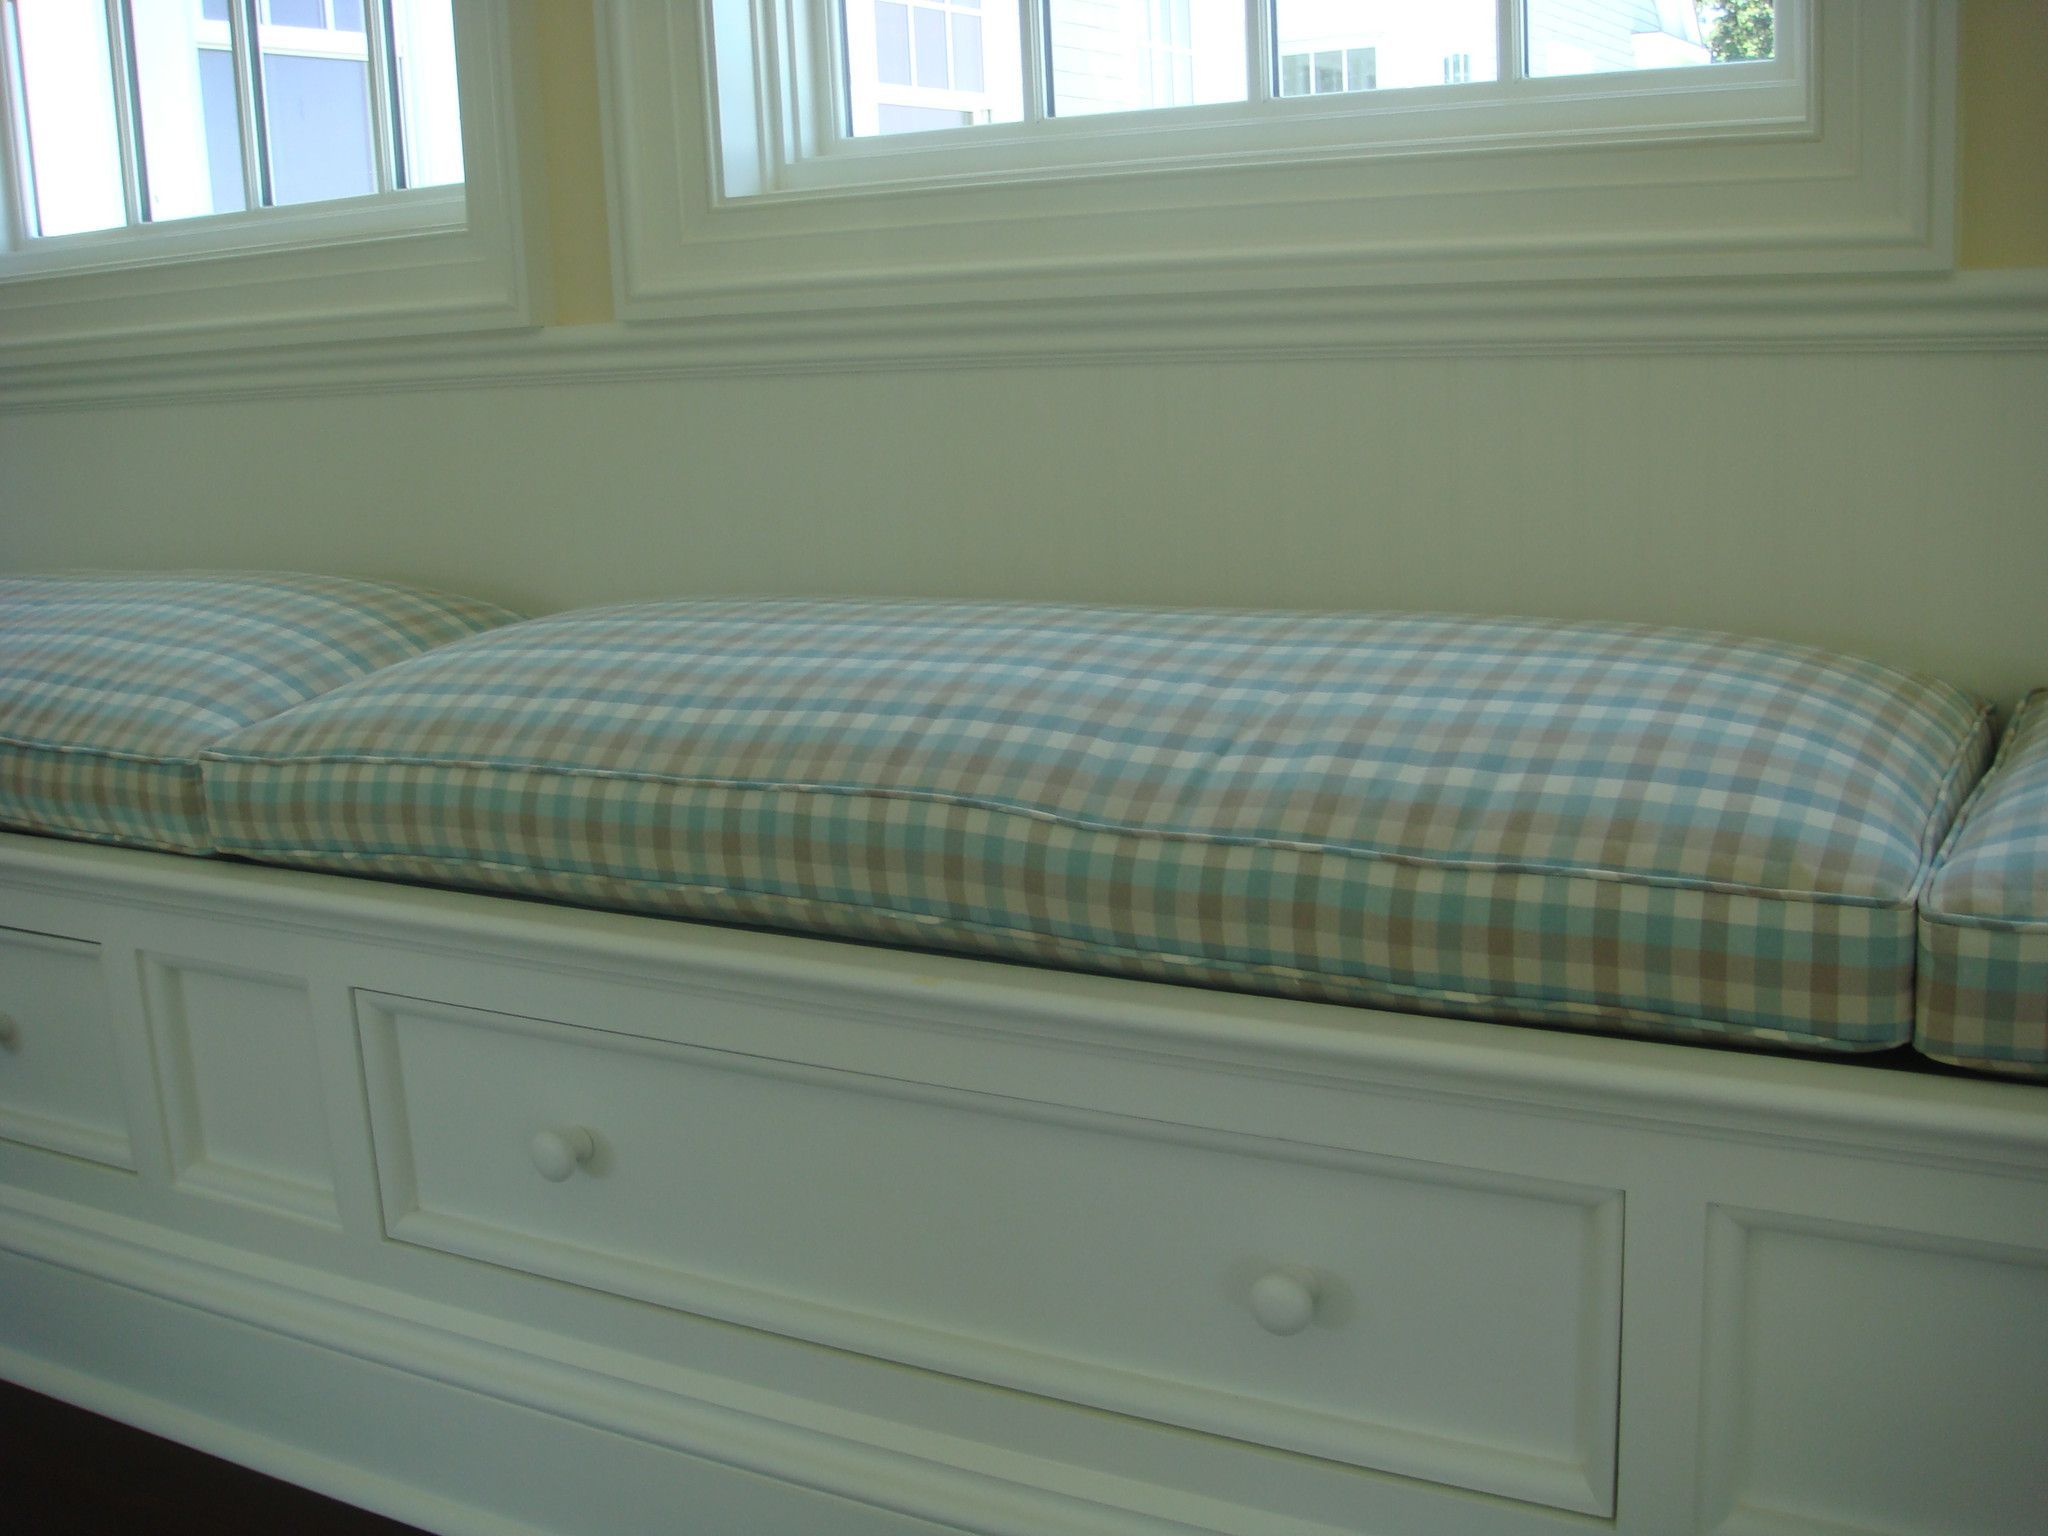 Window Seat Cushions For Playroom Ideas For The House